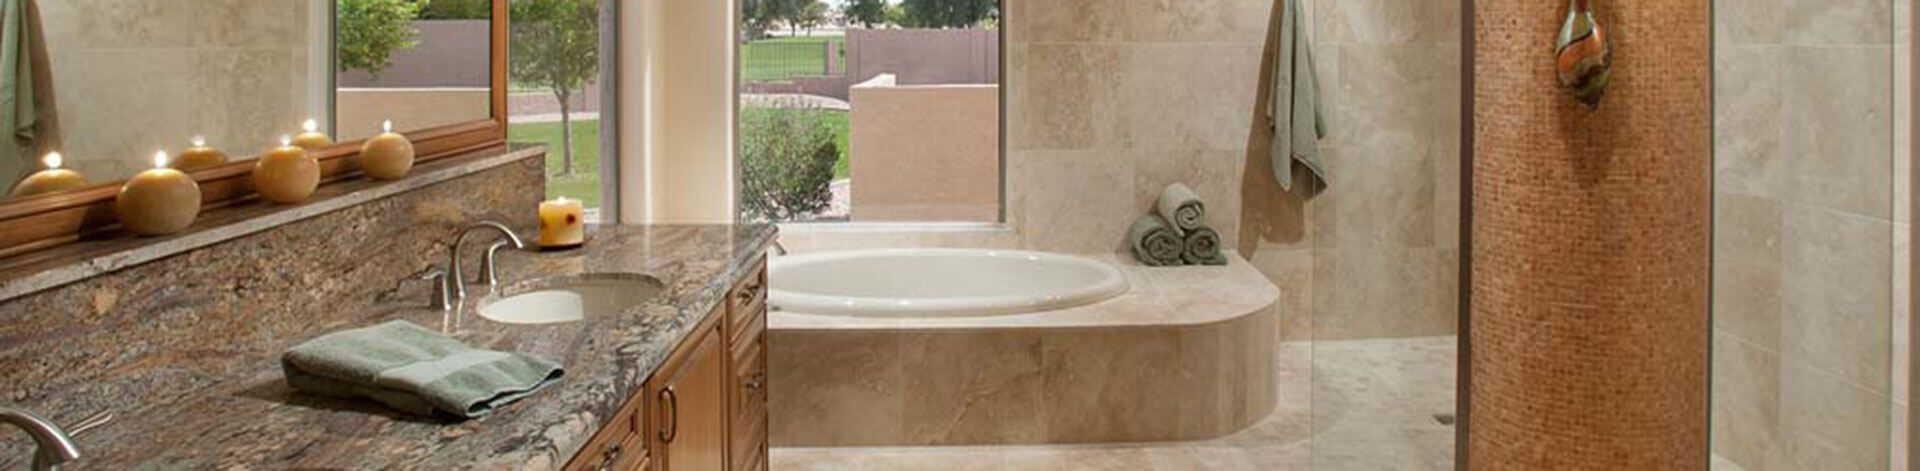 Phoenix Bathroom Remodel Pleasing Bathroom Remodeling In Phoenix & Scottsdale  Republic West Remodeling Design Decoration